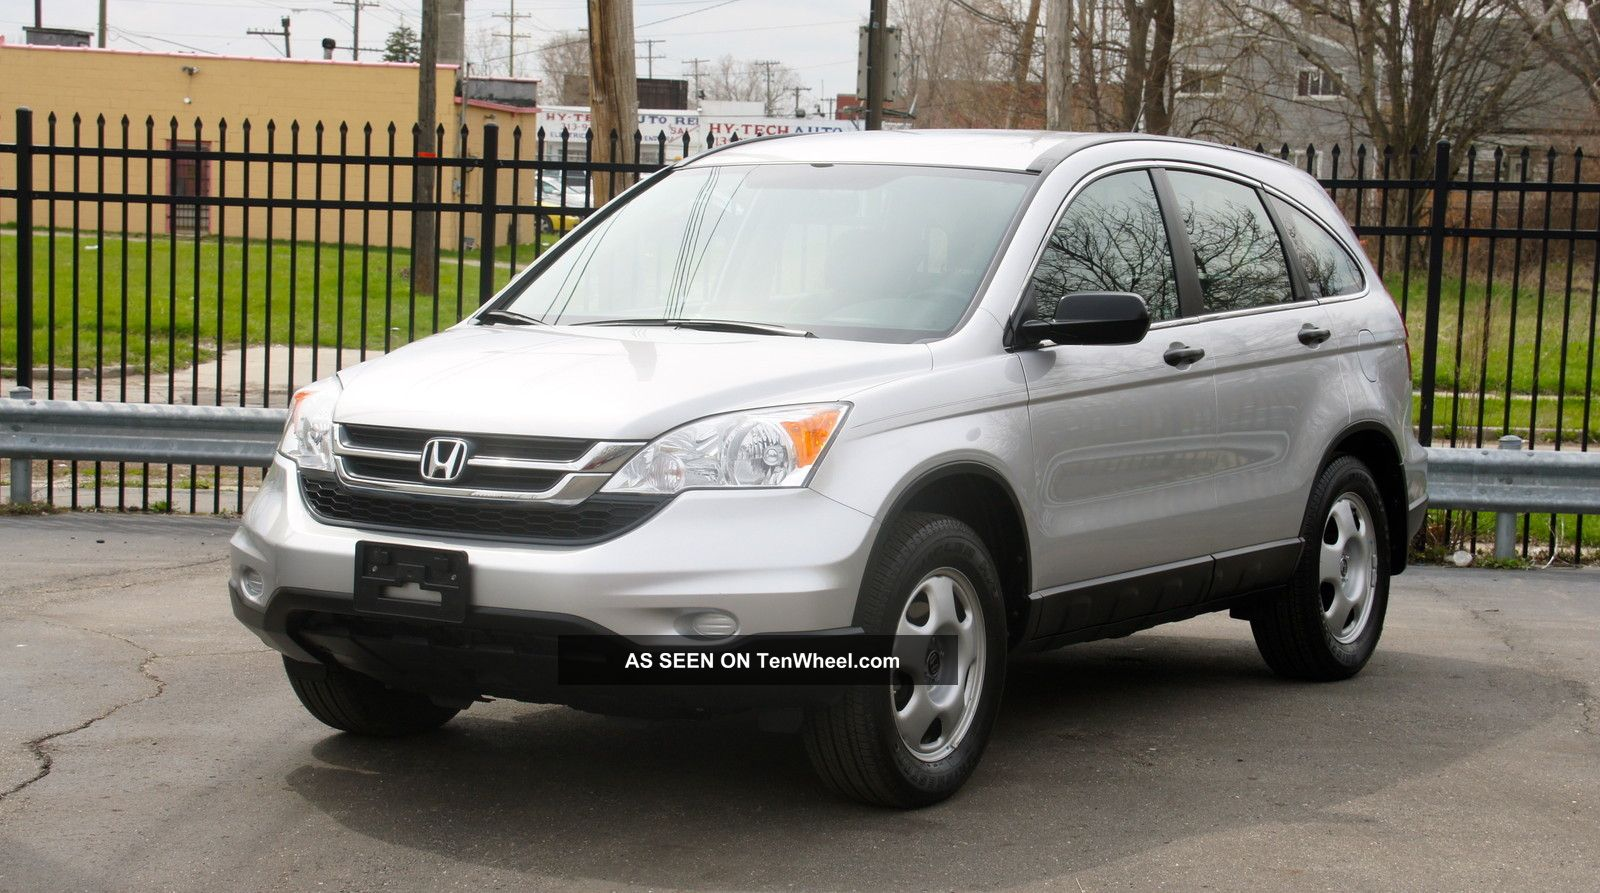 2011 Honda Cr V Fuse Panel Lighter Search For Wiring Diagrams 2006 Box Diagram Of 2001 Mercedes Clk Ford Truck